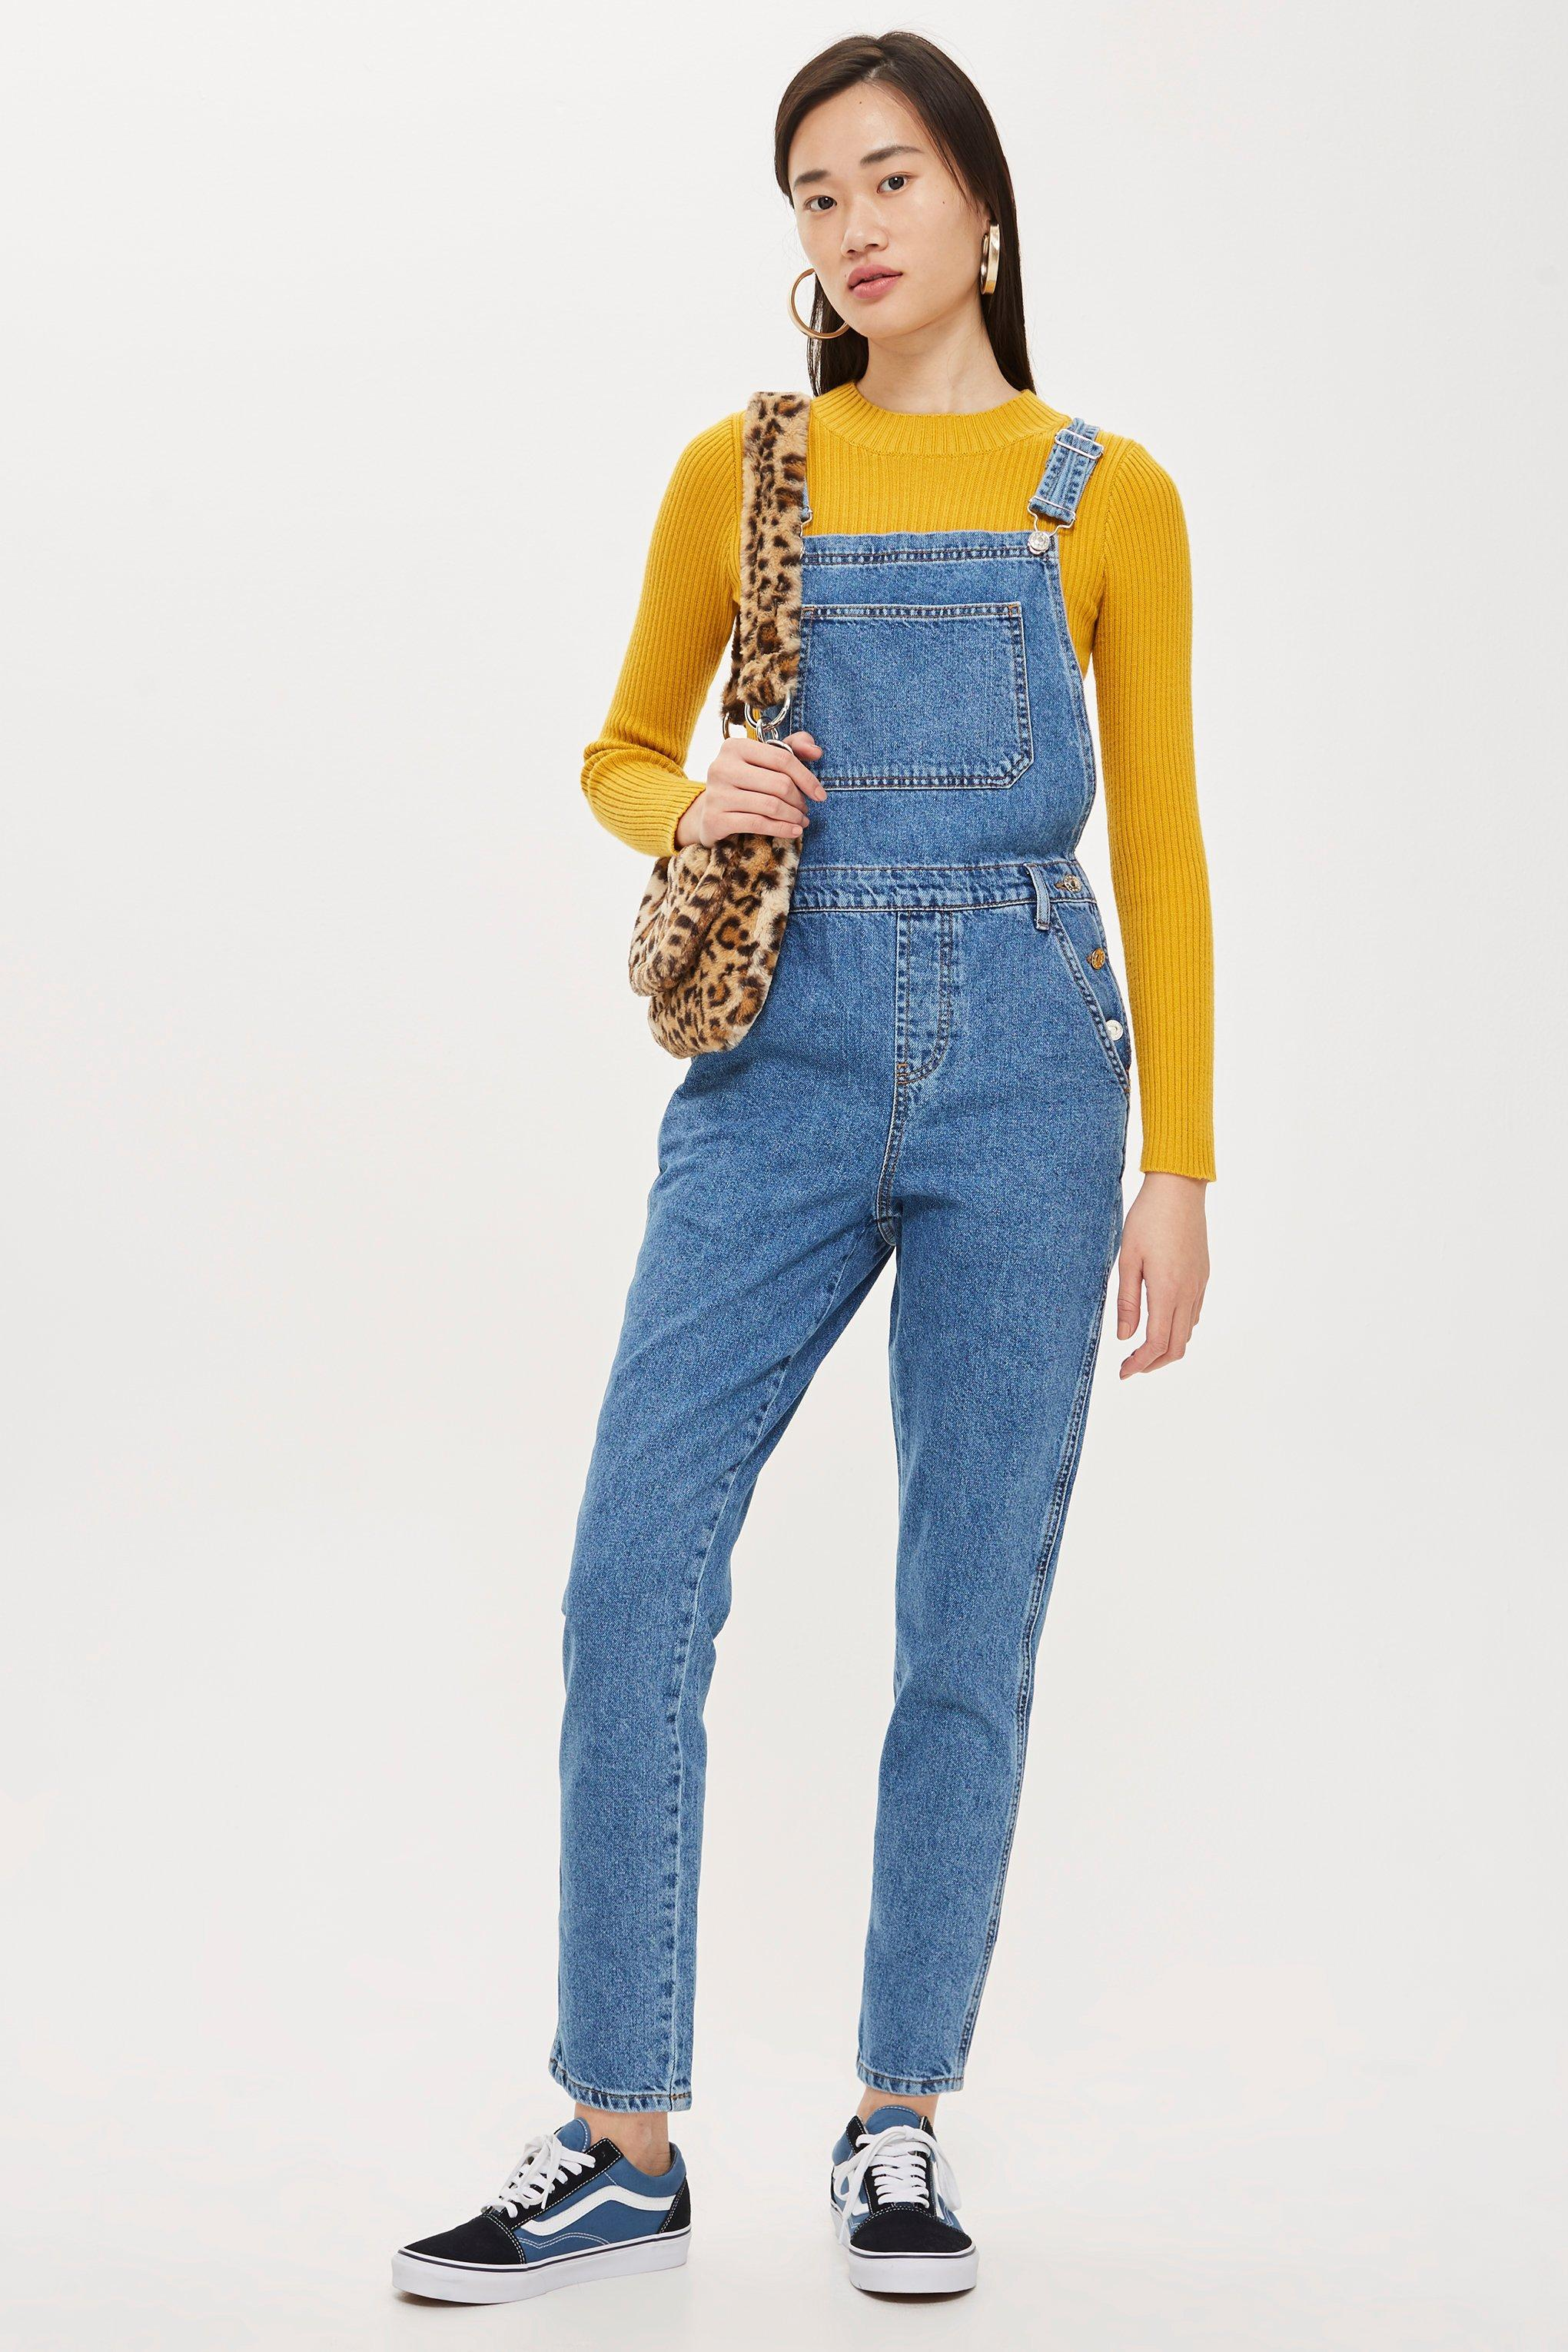 Lyst - Topshop Slim Leg Dungarees in Blue e015f90eabbee